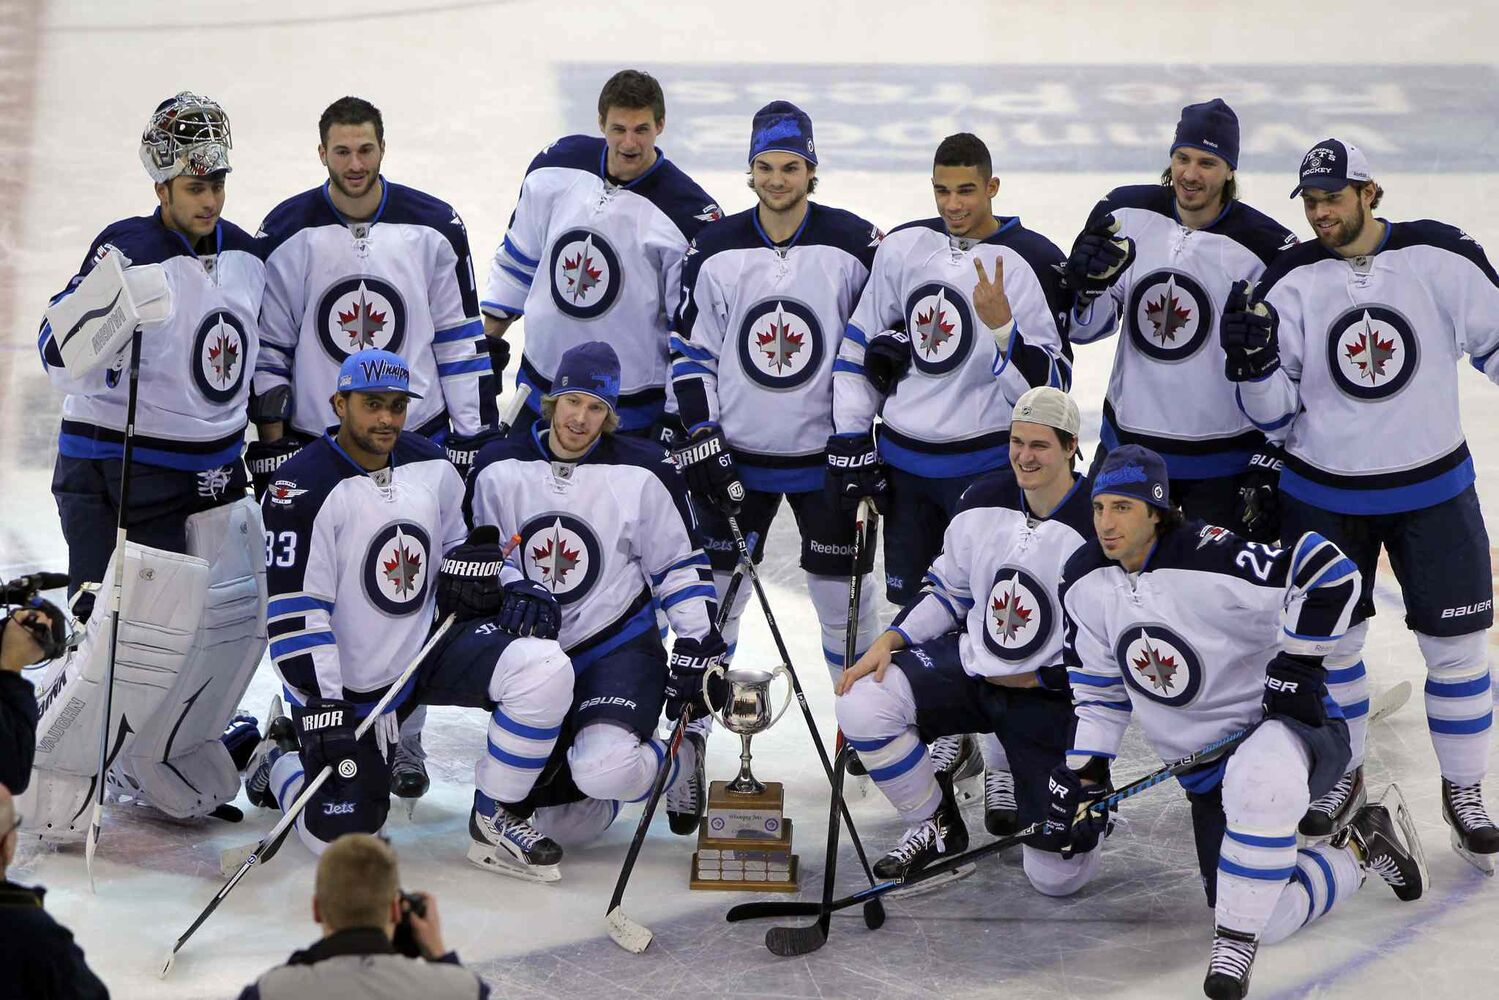 Team White poses with the trophy after winning the Winnipeg Jets Skills Competition at the MTS Centre Wednesday evening. (Boris Minkevich / Winnipeg Free Press)